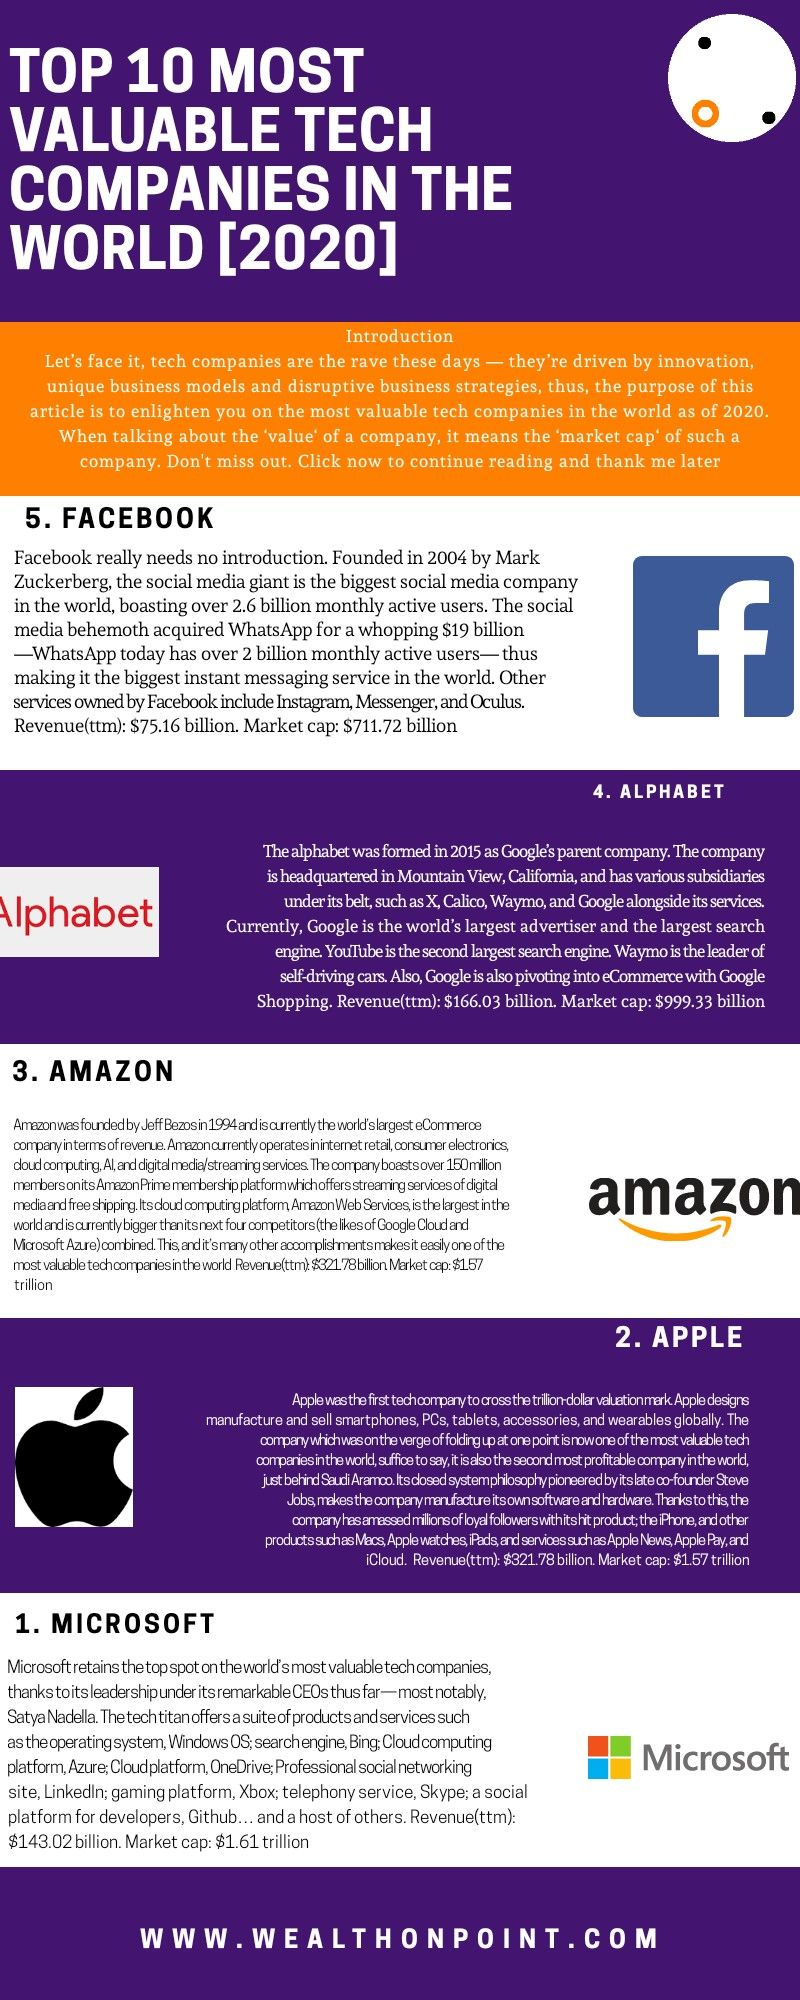 Top 10 Most Valuable Tech Companies In The World 2020 In 2020 What Is Marketing Cloud Computing Platform Tech Companies